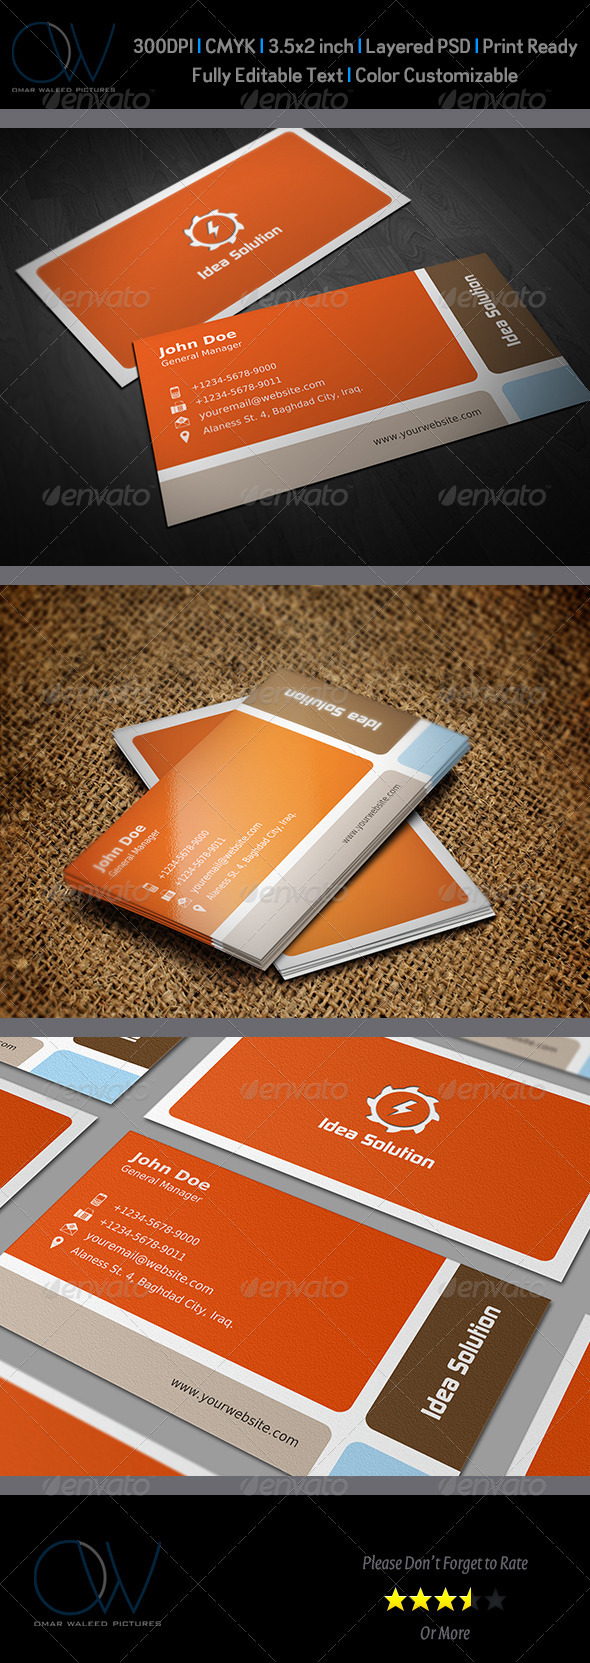 GraphicRiver Corporate Business Card Vol.7 3433081